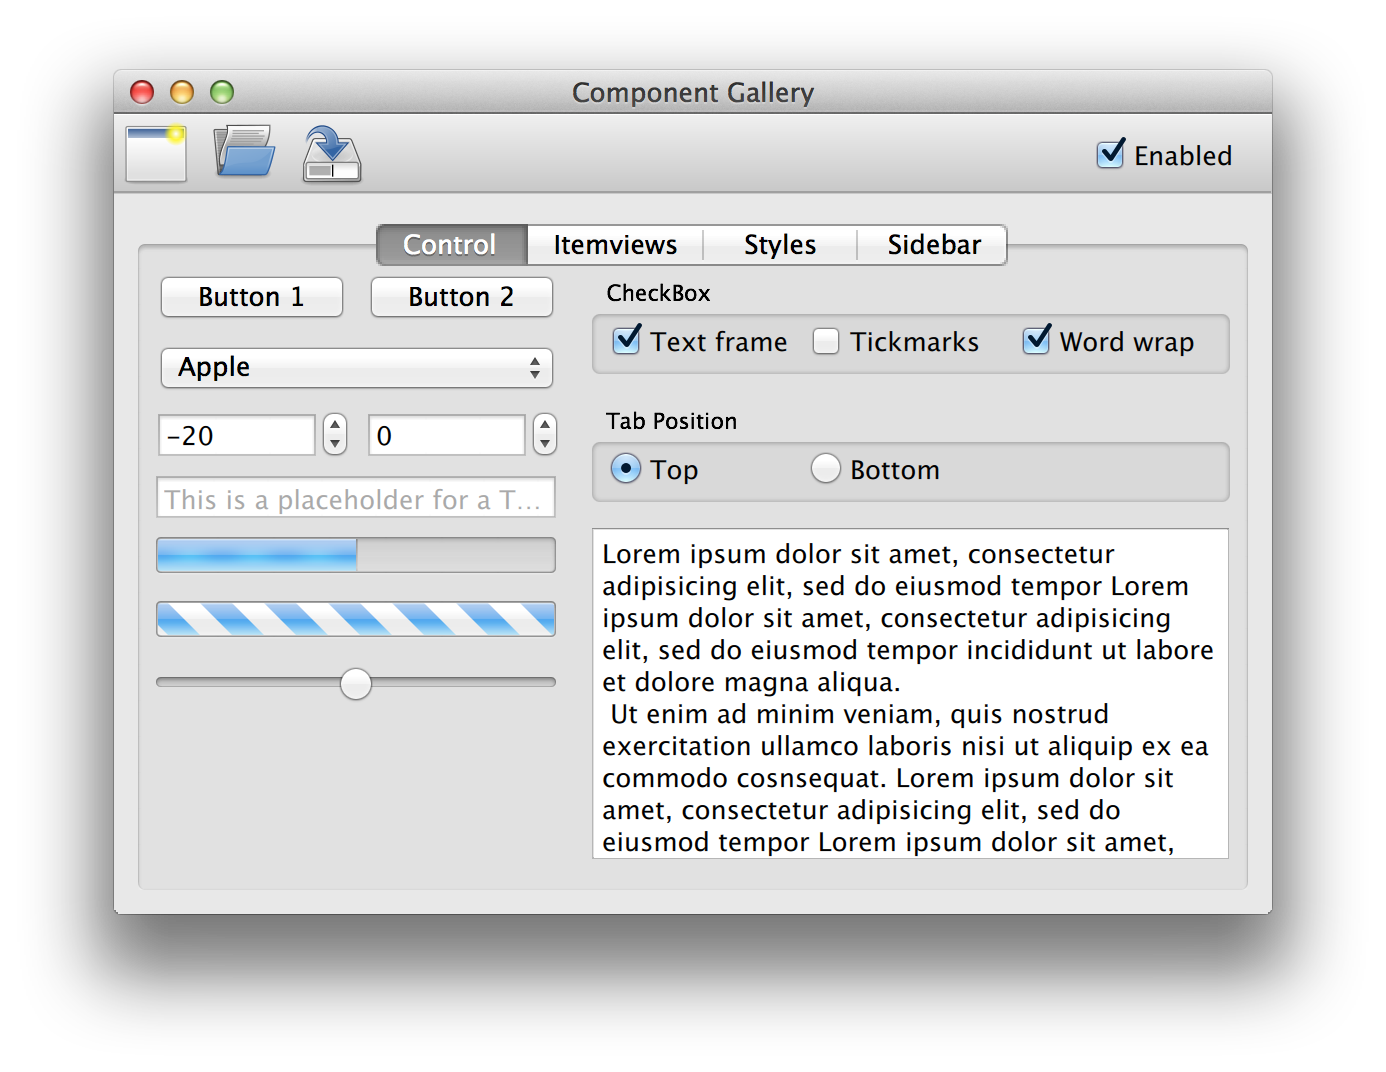 Retina display support for Mac OS, iOS and X11 - Qt Blog